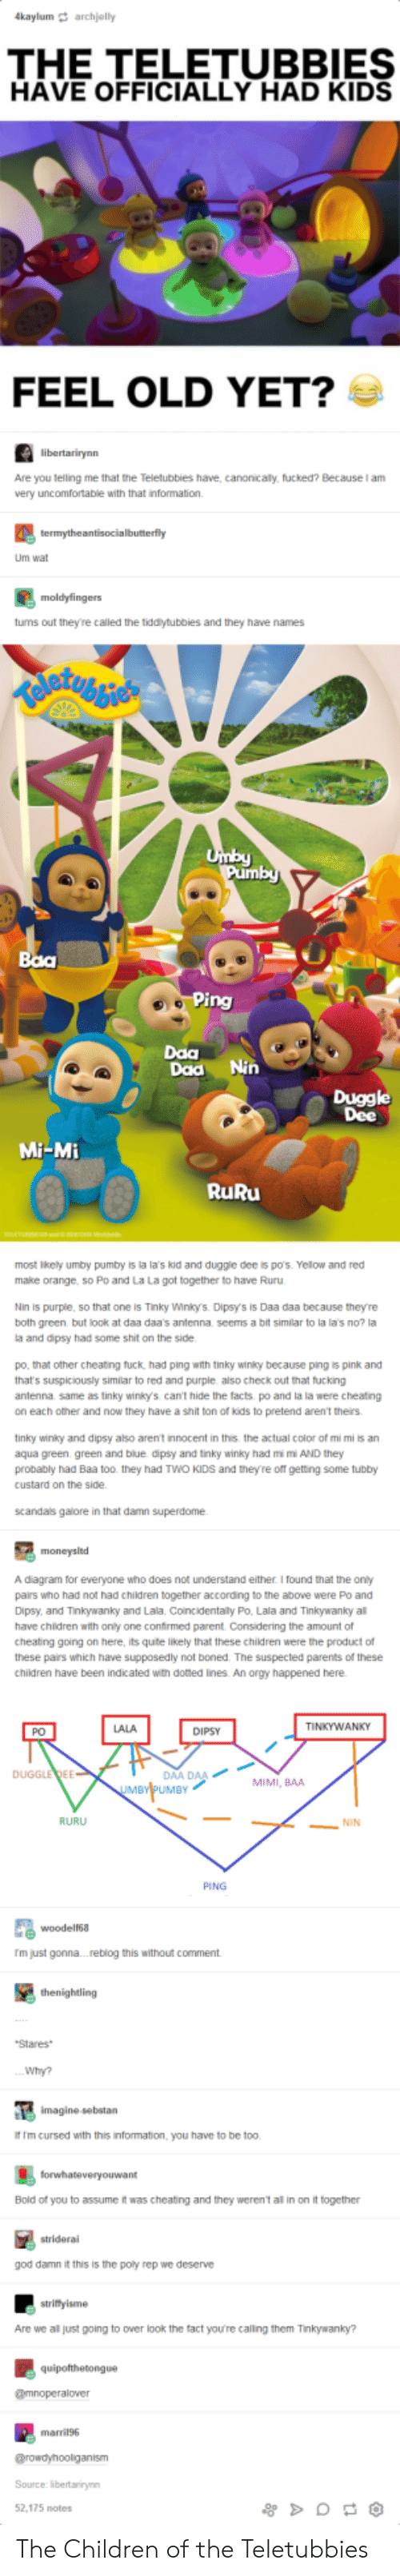 mimi: kaylum archjelly  THE TELETUBBIES  HAVE OFFICIALLY HAD KIDS  FEEL OLD YET?  Are you telling me that the Teletubbies have, canonicaly, fucked? Because I am  very uncomfortable with that information.  Um wat  tums out they're called the tiddytubbies and they have names  Daa  Daa Nin  Duggle  Dee  Mi-Mi  RuRu  most ikely umby pumby is la la's kid and duggle dee is p0's. Yelow and red  make orange, so Po and La La got together to have Ruru  Nin is purple, so that one is Tinky Winlo. Dipsys is Daa daa because they're  both green but Ook at daa daas antenna seems a bit similar to la la's no? !  a and dipsy had some shit on the side  po, that other cheating tuck, had ping with tinky winky because ping is pink and  that's suspiciously similar to red and purple also check out that fucking  antenna same as tinky winky's can't hide the facts po and la la were cheating  on each other and now they have a shit ton of kids to pretend aren't theirs  tinky winiky and dipsy also arent innocent in this the actual color of mi mi is an  aqua green. green and blue dipsy and tinky winky had mi m AND they  probably had Baa too. they had TWO KIDs and theyre off getting some tubby  custard on the side  scandas galore in that damn superdome  A diagram for everyone who does not understand either I found that the oniy  pairs who had not had children together according to the above were Po and  Dipsy, and Tinkywanky and Lala. Coincidentaily Po, Lala and Tinkywanky al  have chidren with only one confirmed parent. Considering the amount of  cheatng going on here, its quite likely that these children were the product of  these pairs which have supposedly not boned. The suspected parents of these  children have been indicated with doted ines. An orgy happened here  LALA  TINKYWANKY  PO  DIPSY  AA DAA  UMBY  DUGGLEDEE  MIMI, BAA  RURU  NIN  PING  尾woodens.  m just gonna....reblog this without comment  Stares  Why?  f Im cursed with this information, you have to be too.  Bold of you to assume it